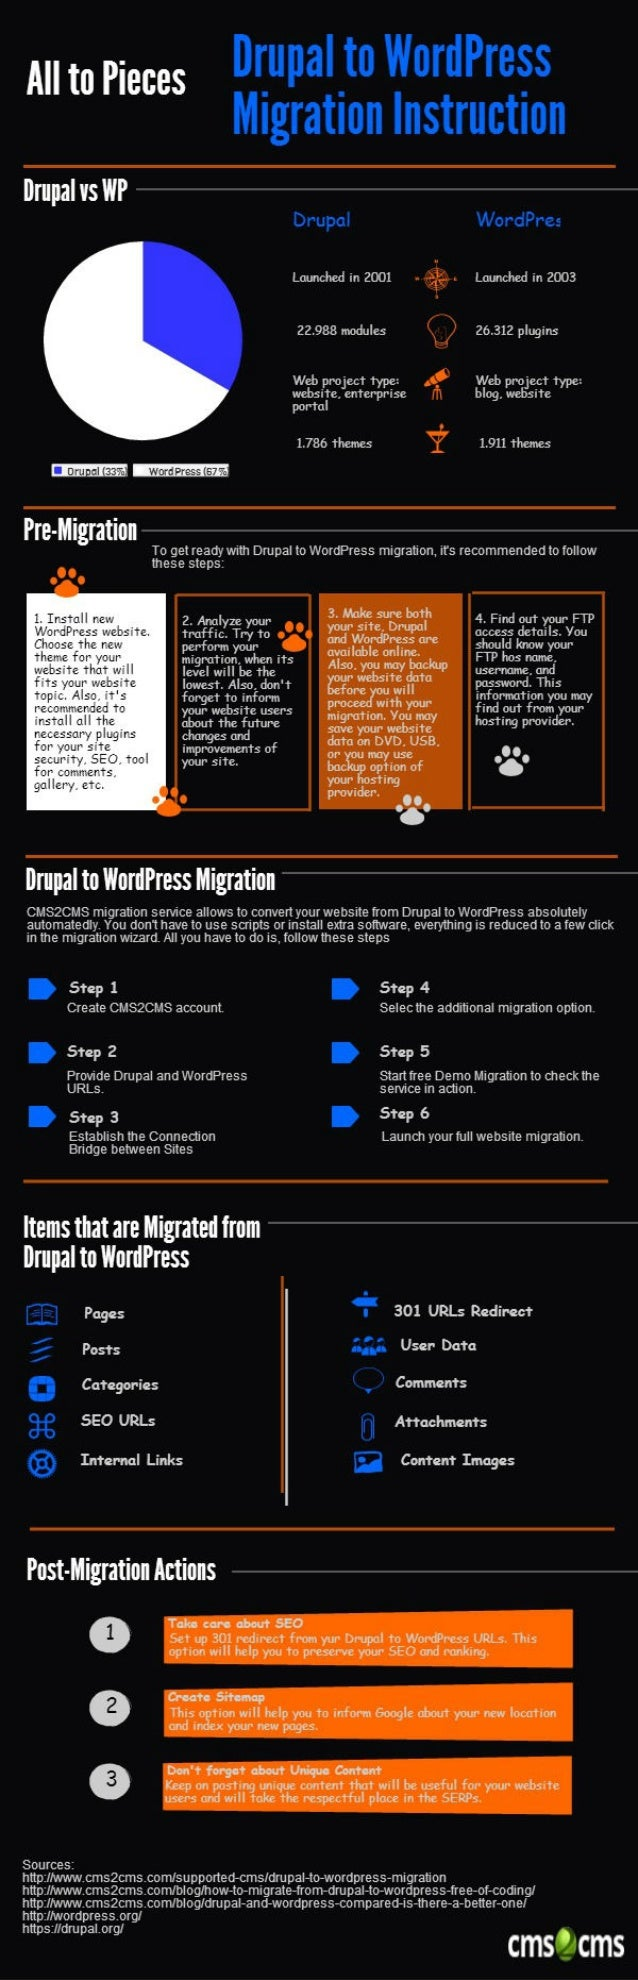 Move Drupal to WordPress Migration: The Whys and Hows